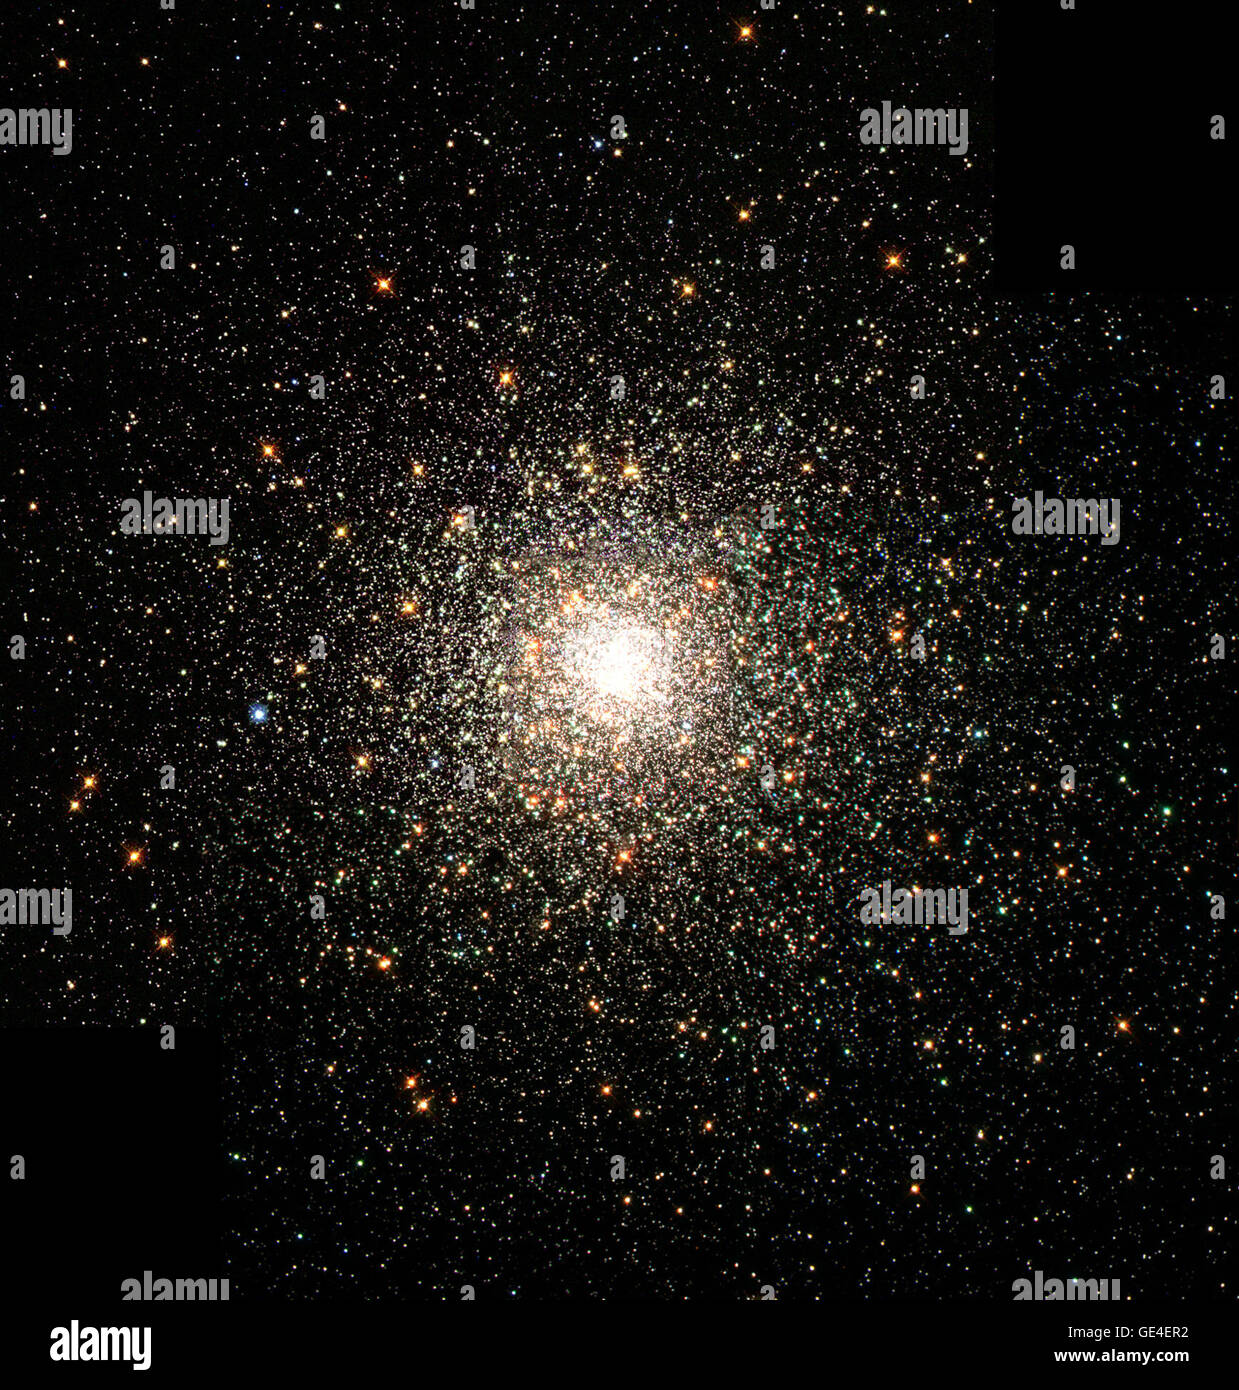 This stellar swarm is M80 (NGC 6093), one of the densest of the 147 known globular star clusters in the Milky Way - Stock Image